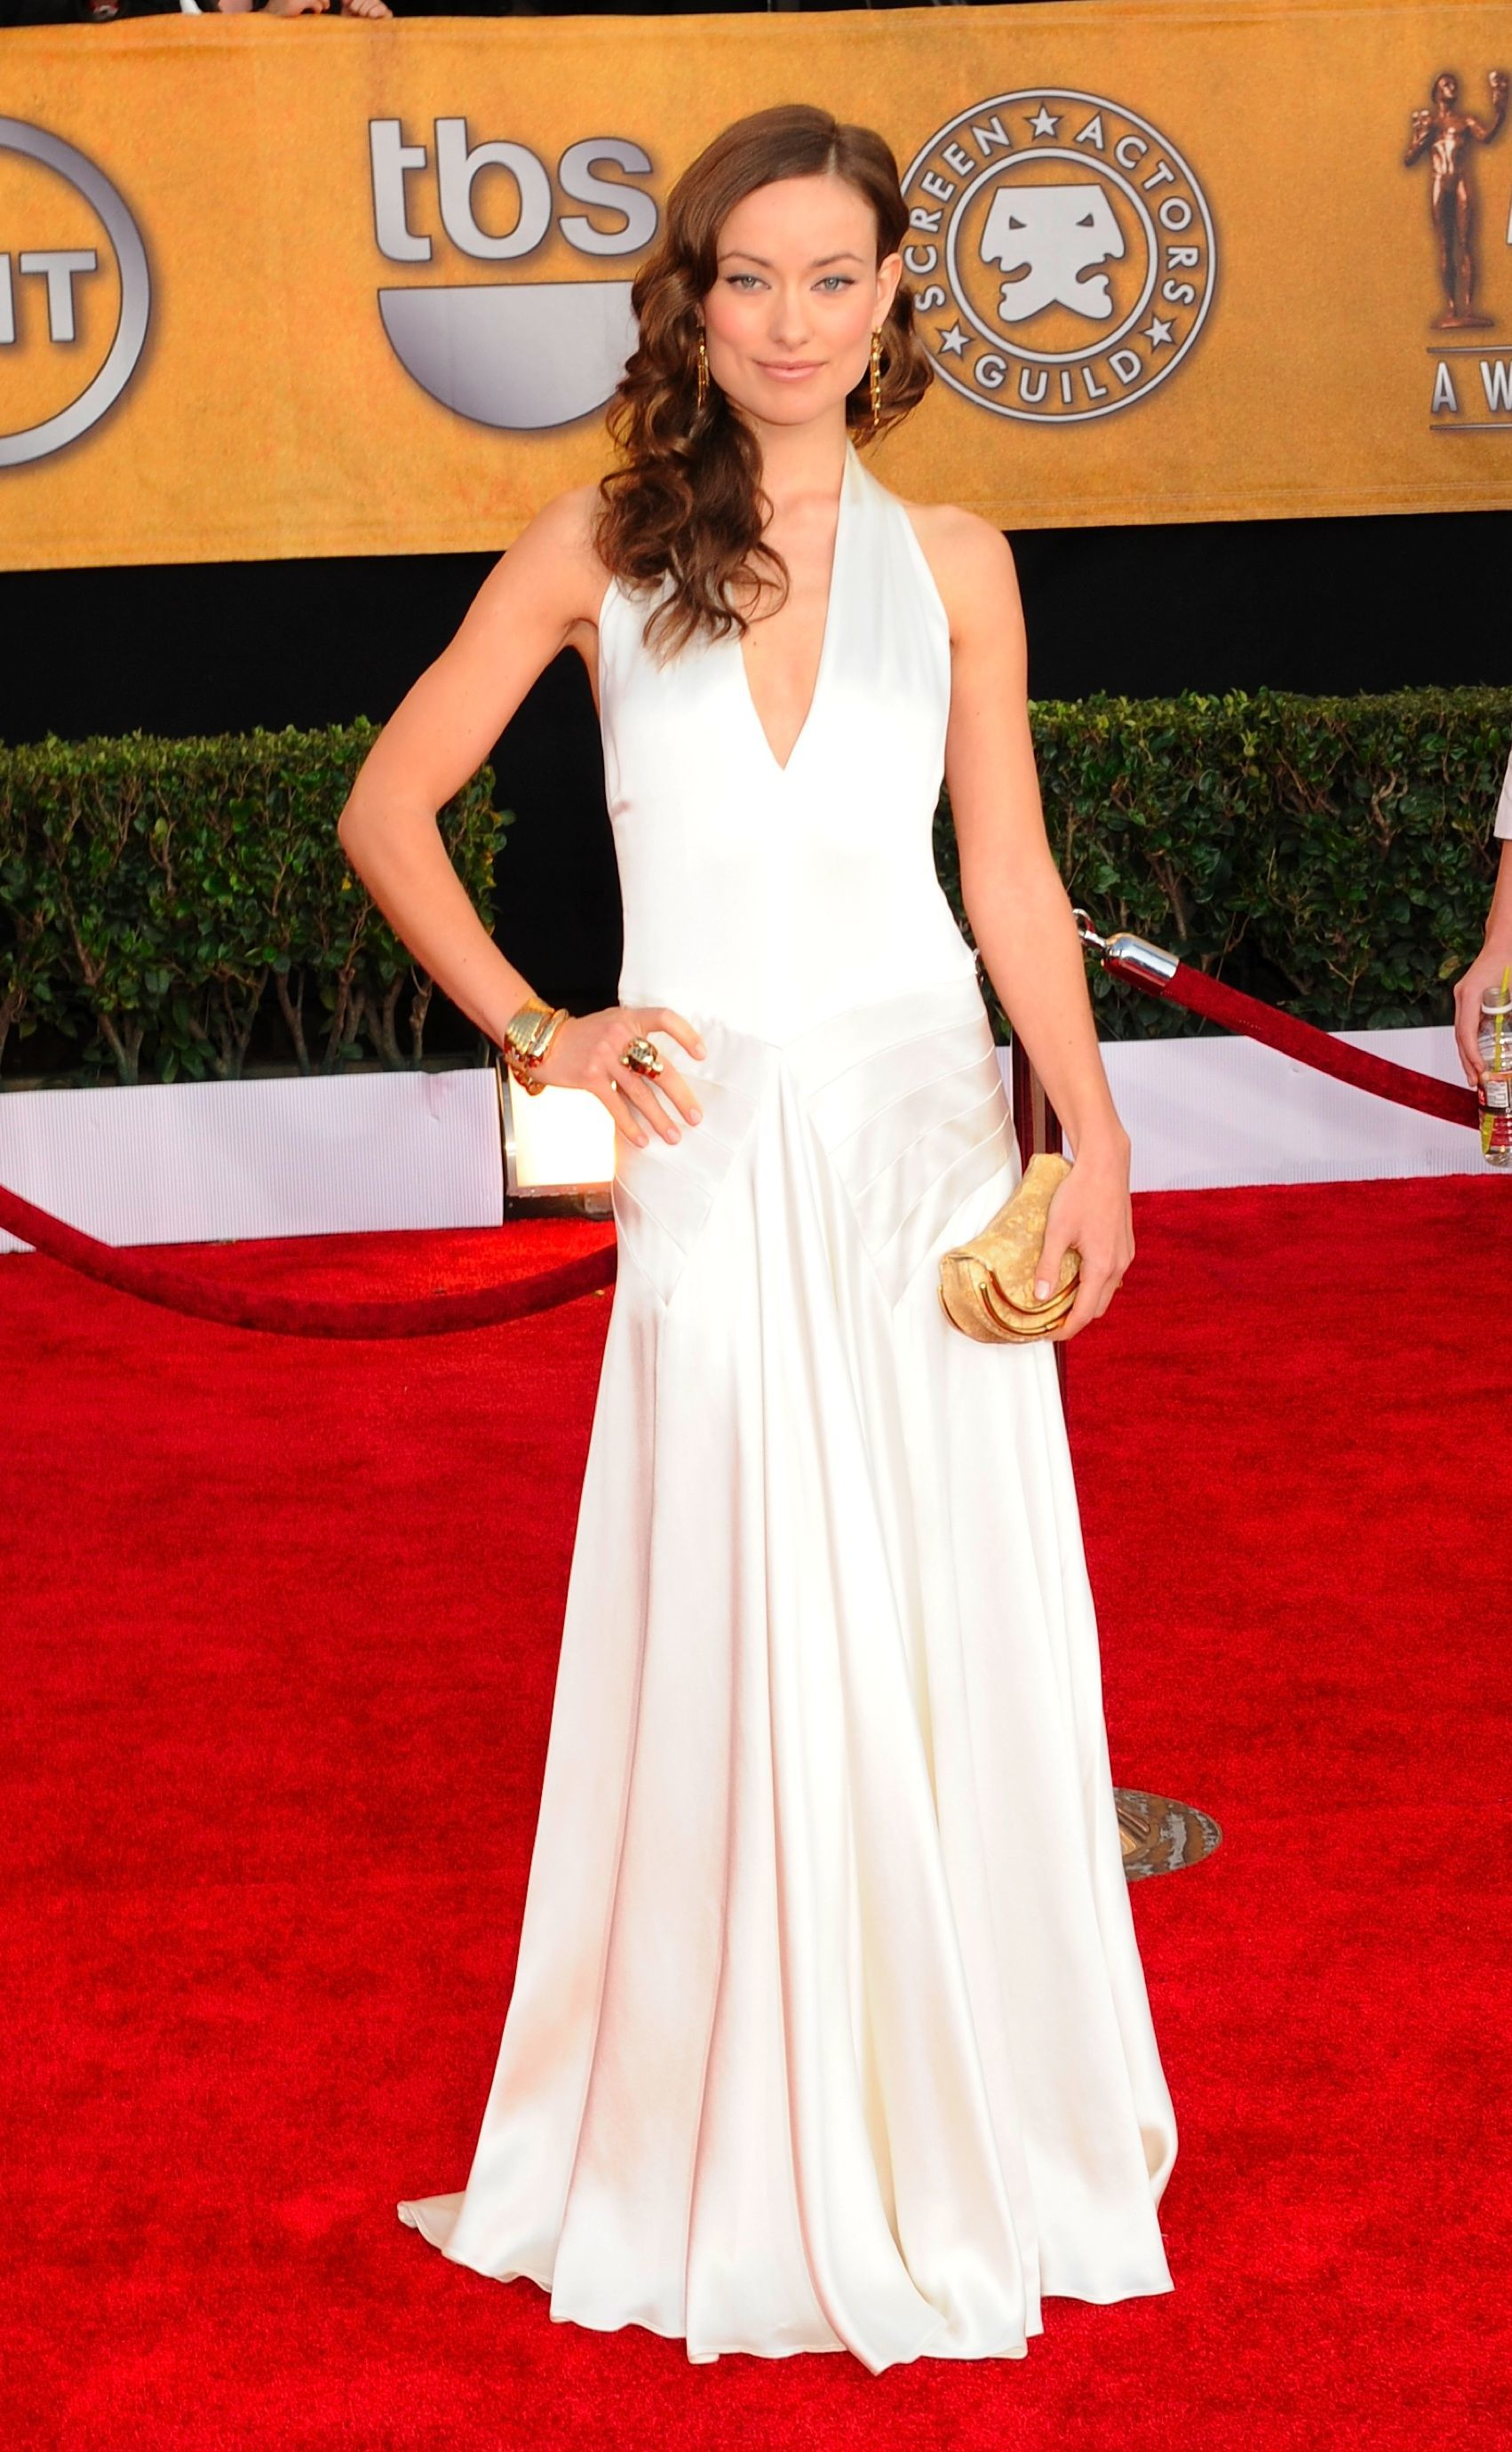 Olivia Wilde attends the 15th Annual Screen Actors Guild Awards in Los Angeles on Jan. 25, 2009.